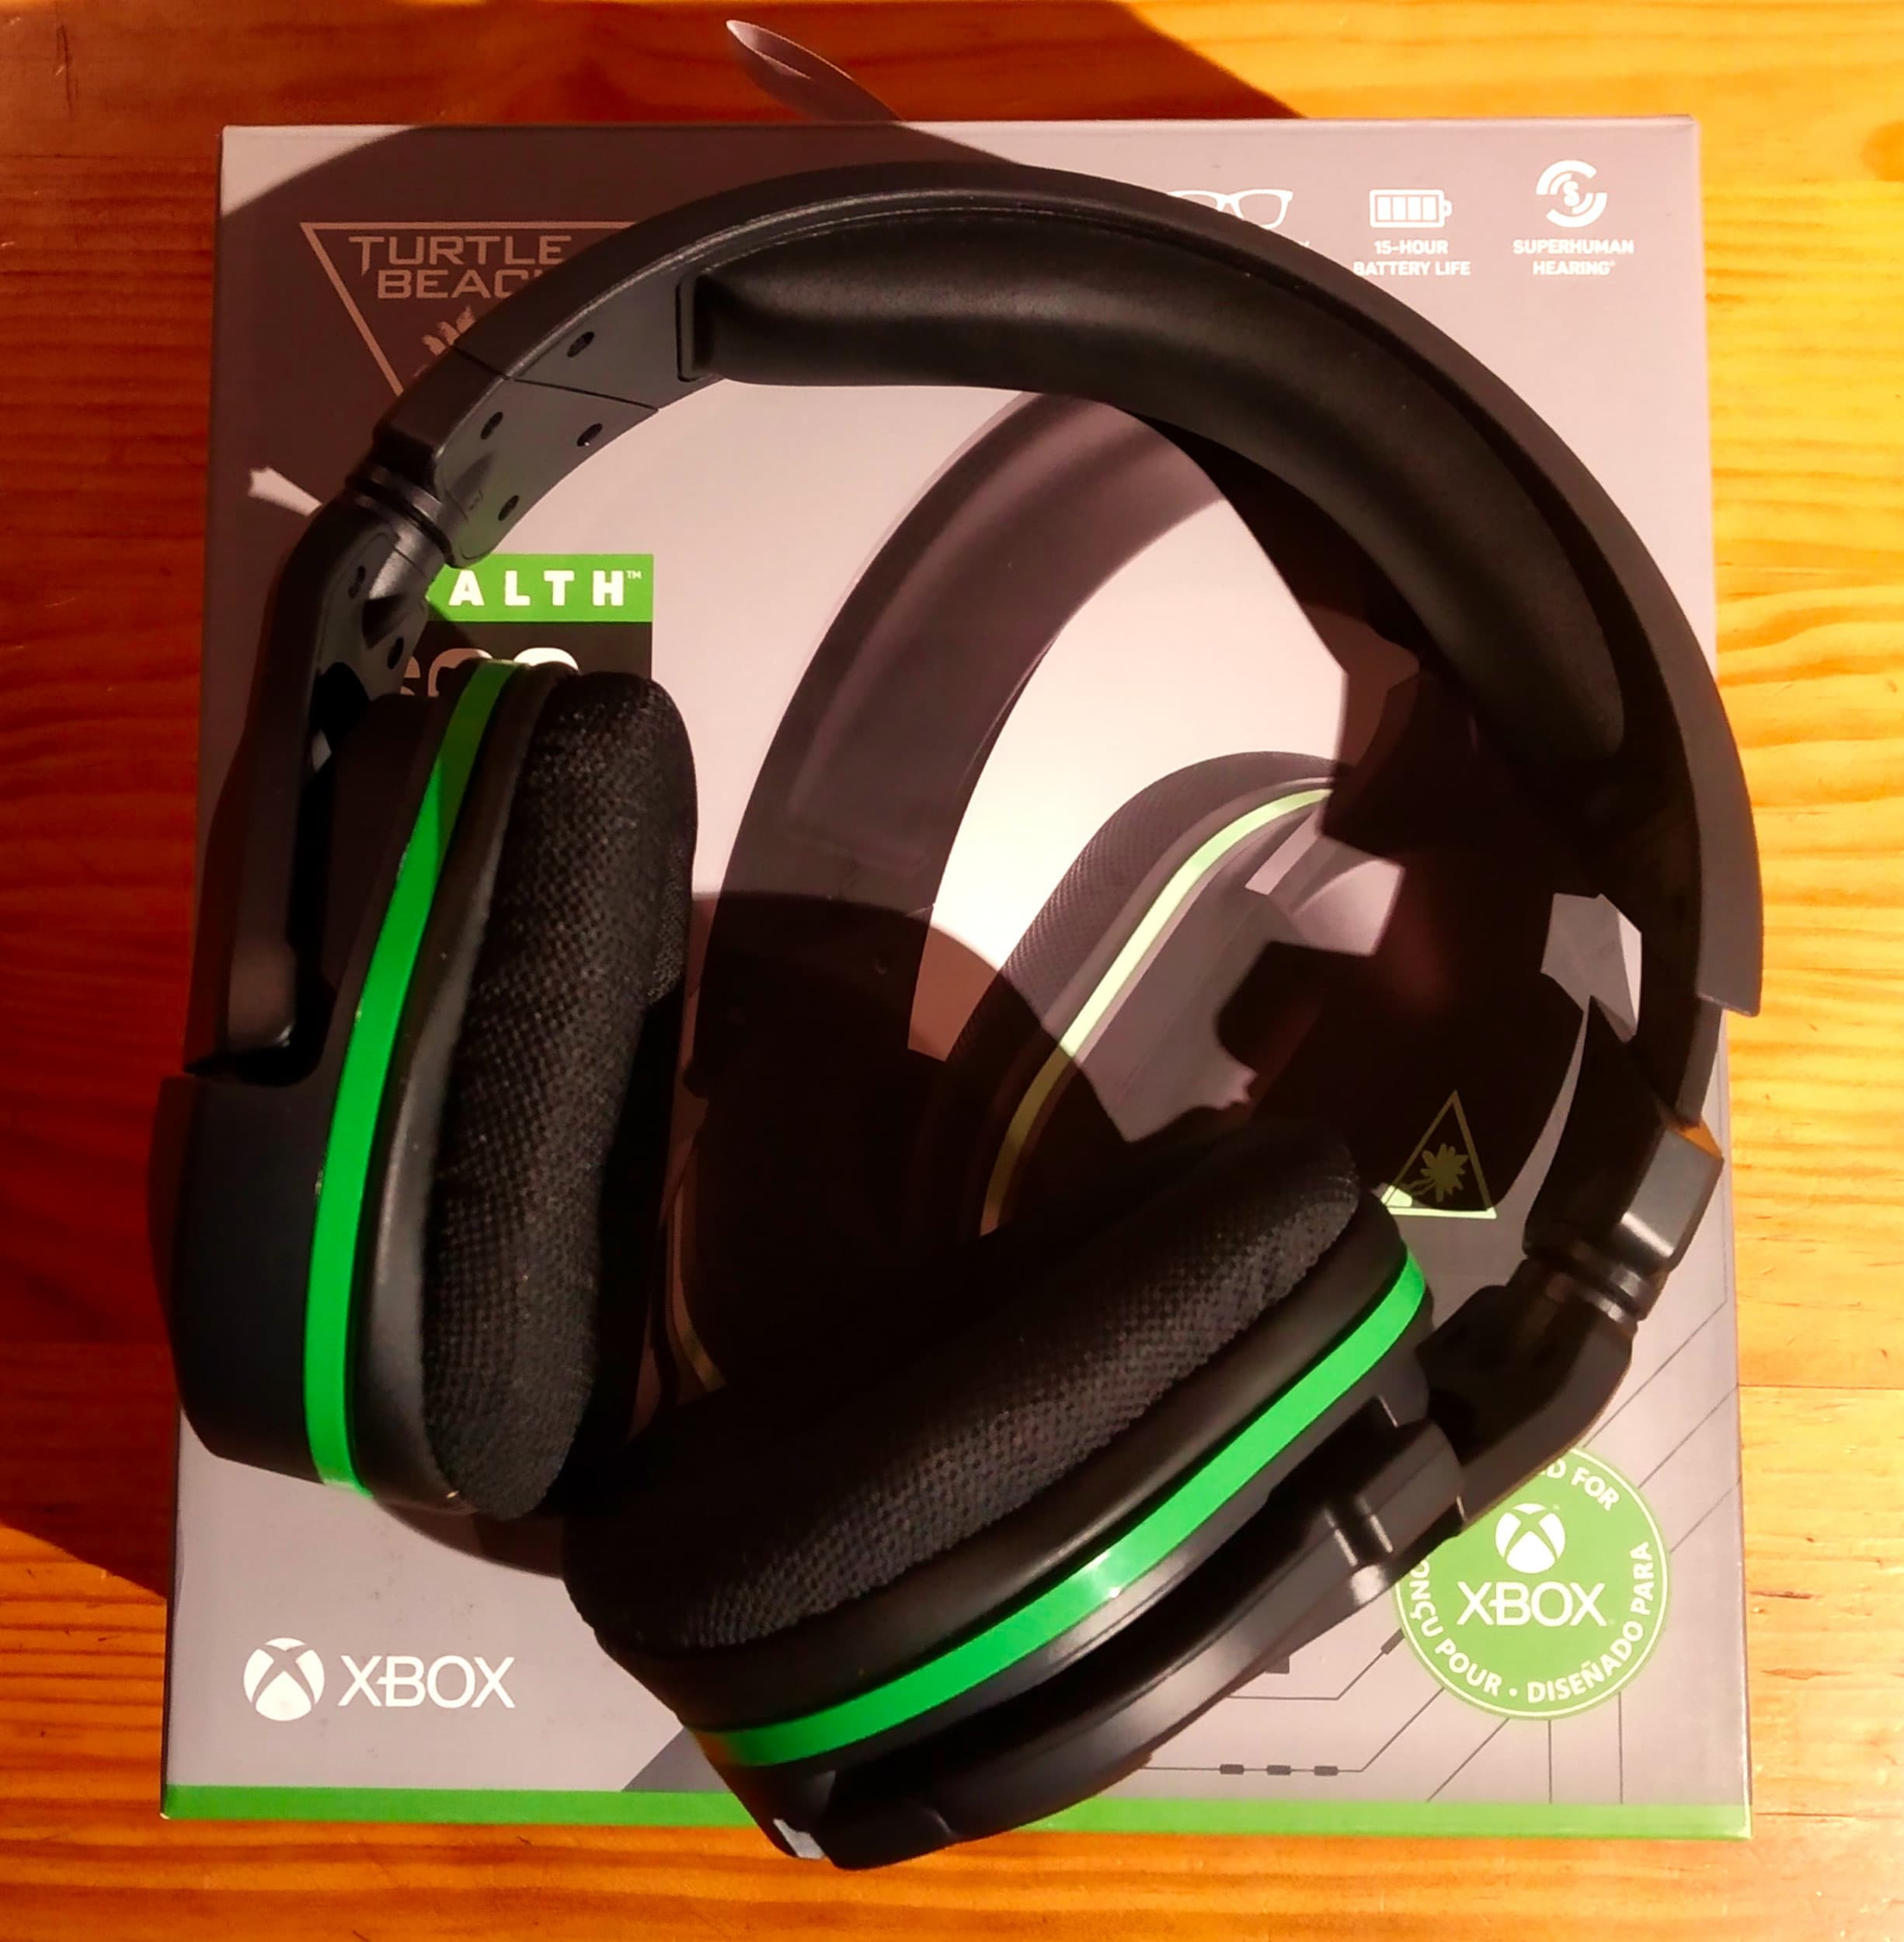 Casque sans fil pour Xbox Series Turtle Beach Stealth 600 Gen 2 : Avis de gamer 2021